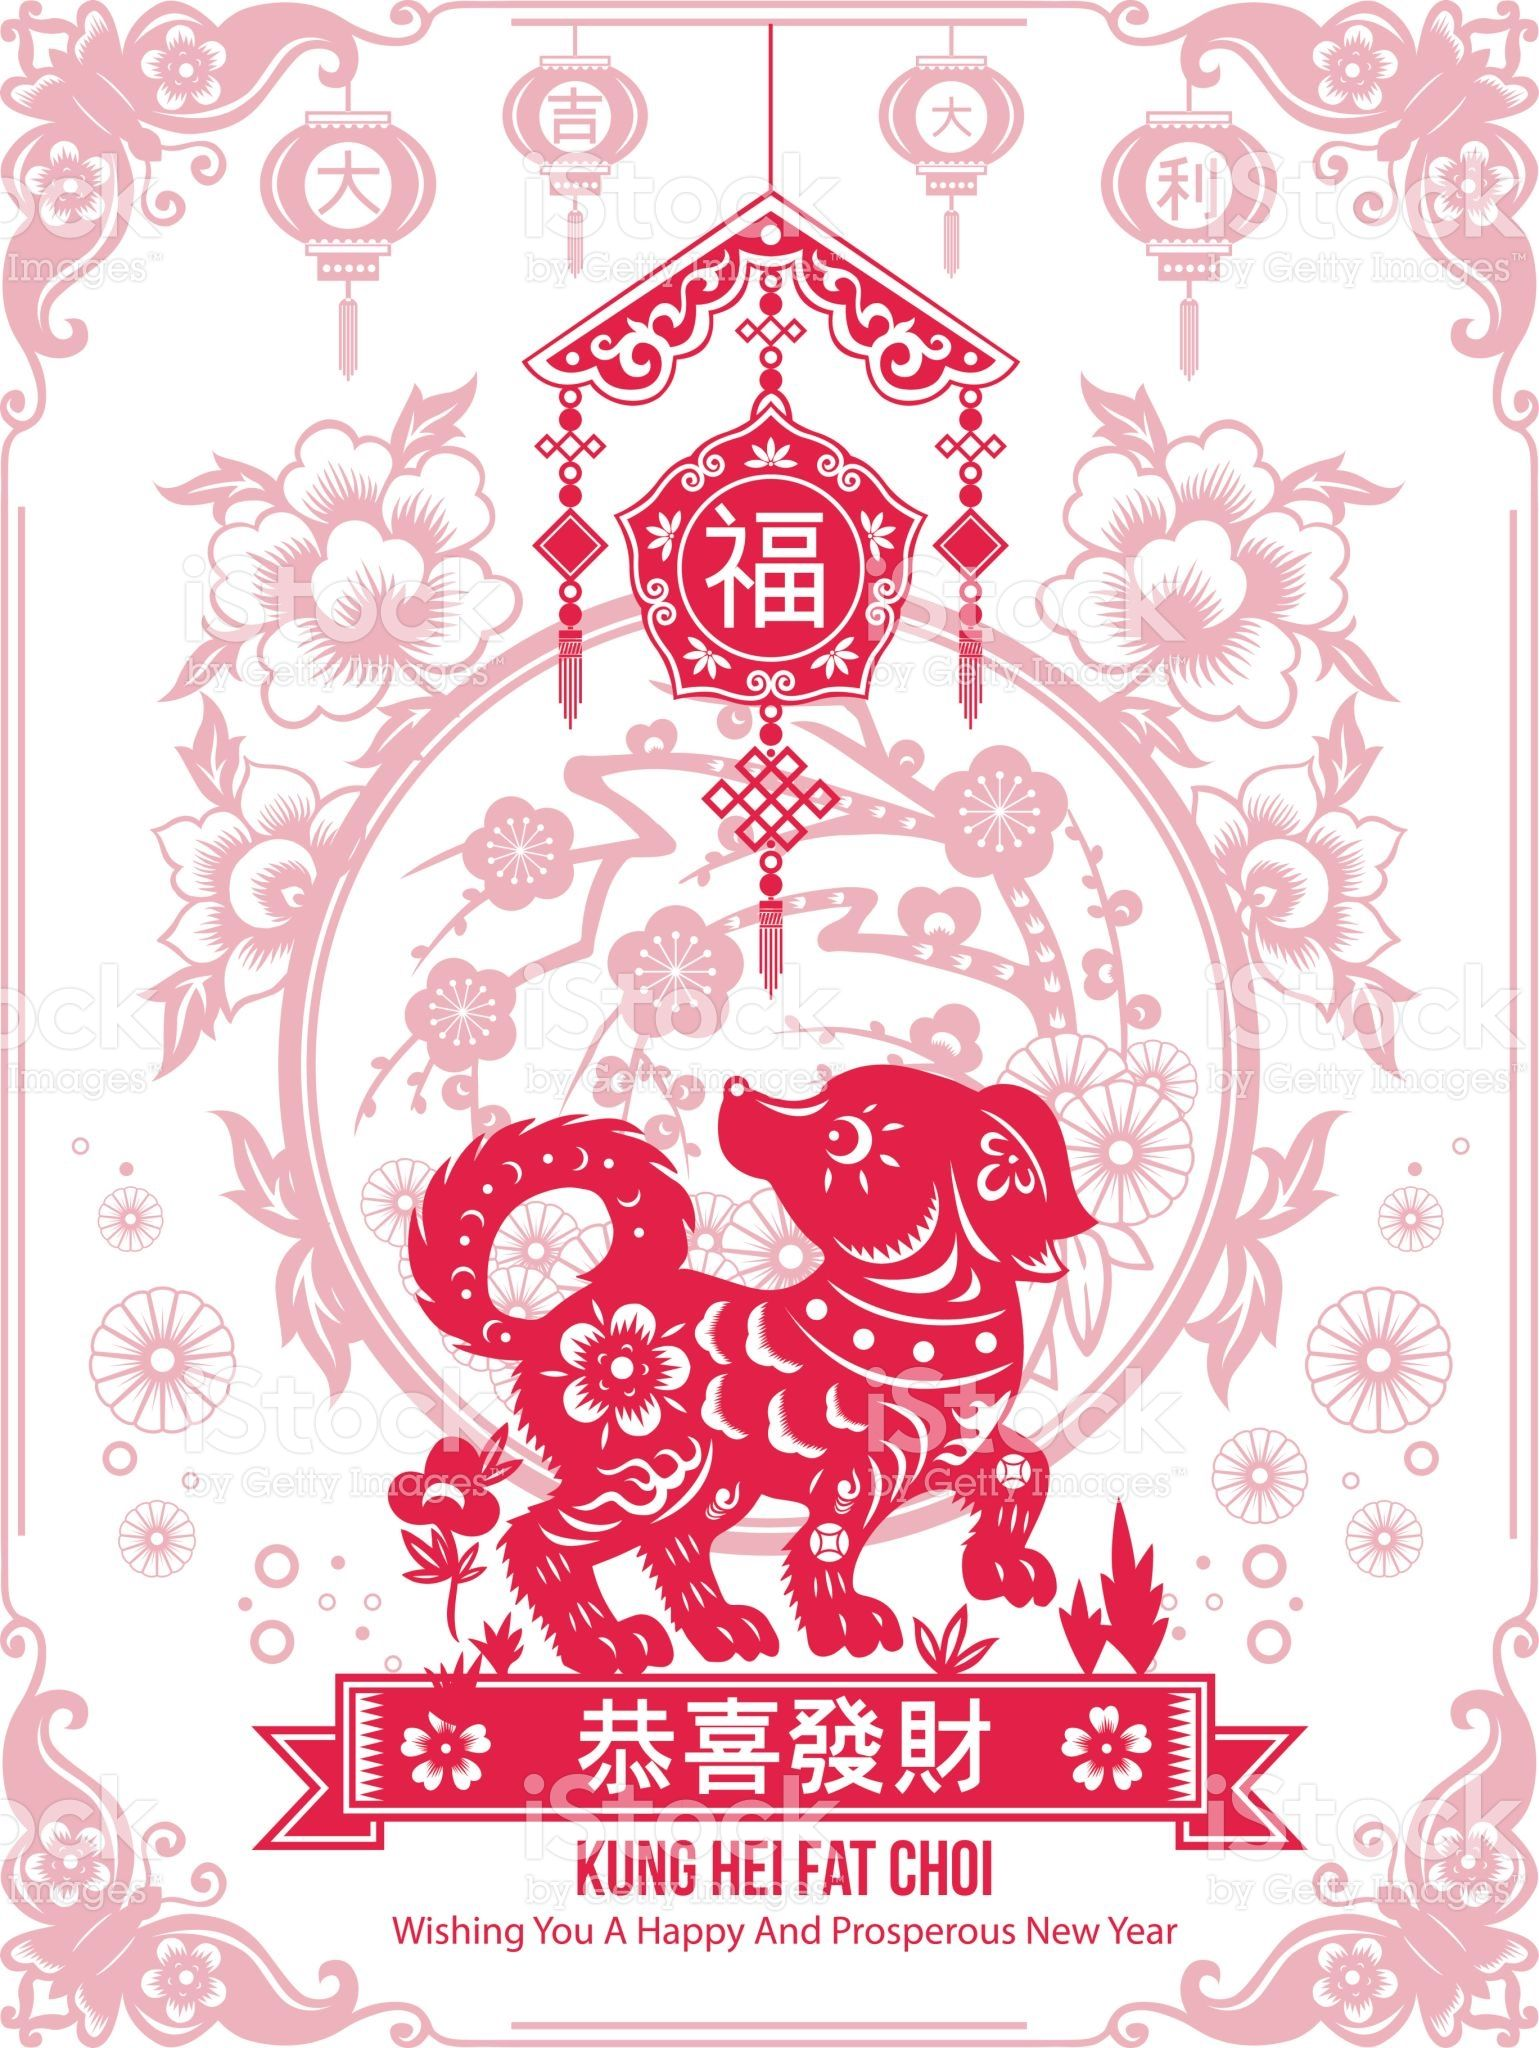 kung hei fat choi year of the dog 2018 royalty free stock vector art